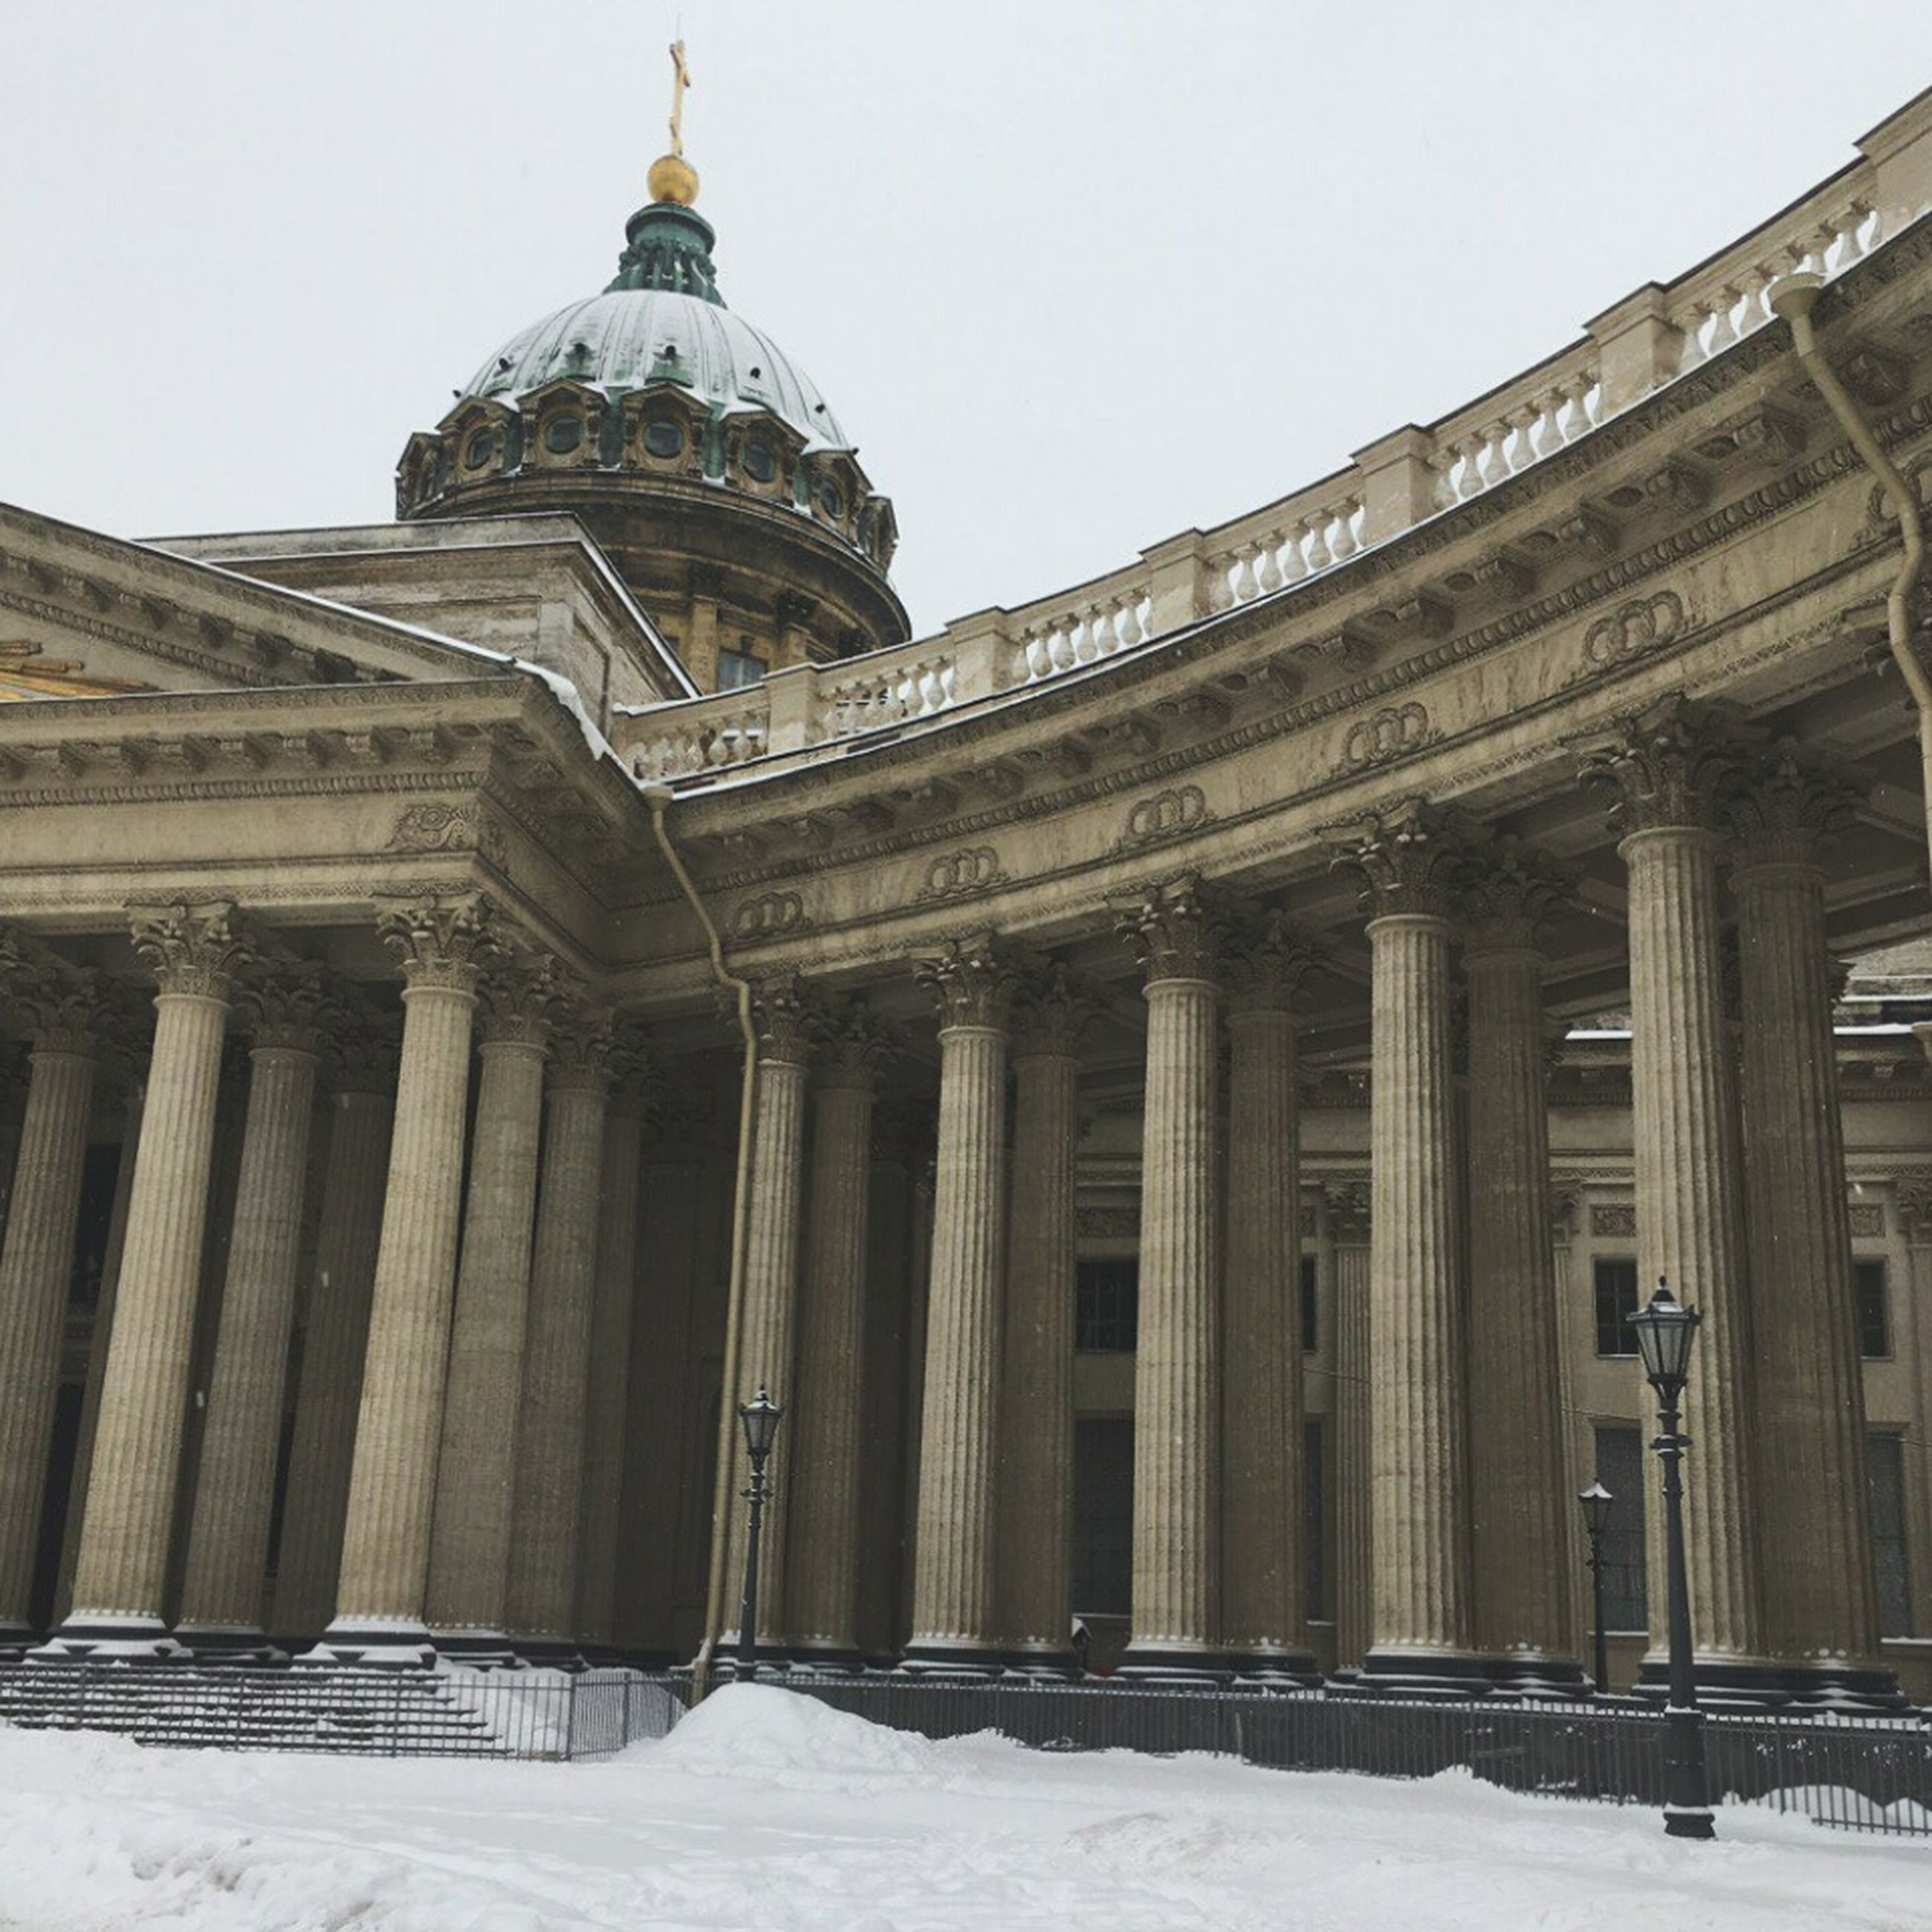 architecture, built structure, building exterior, architectural column, travel destinations, snow, outdoors, history, religion, city, place of worship, day, no people, sky, cold temperature, pediment